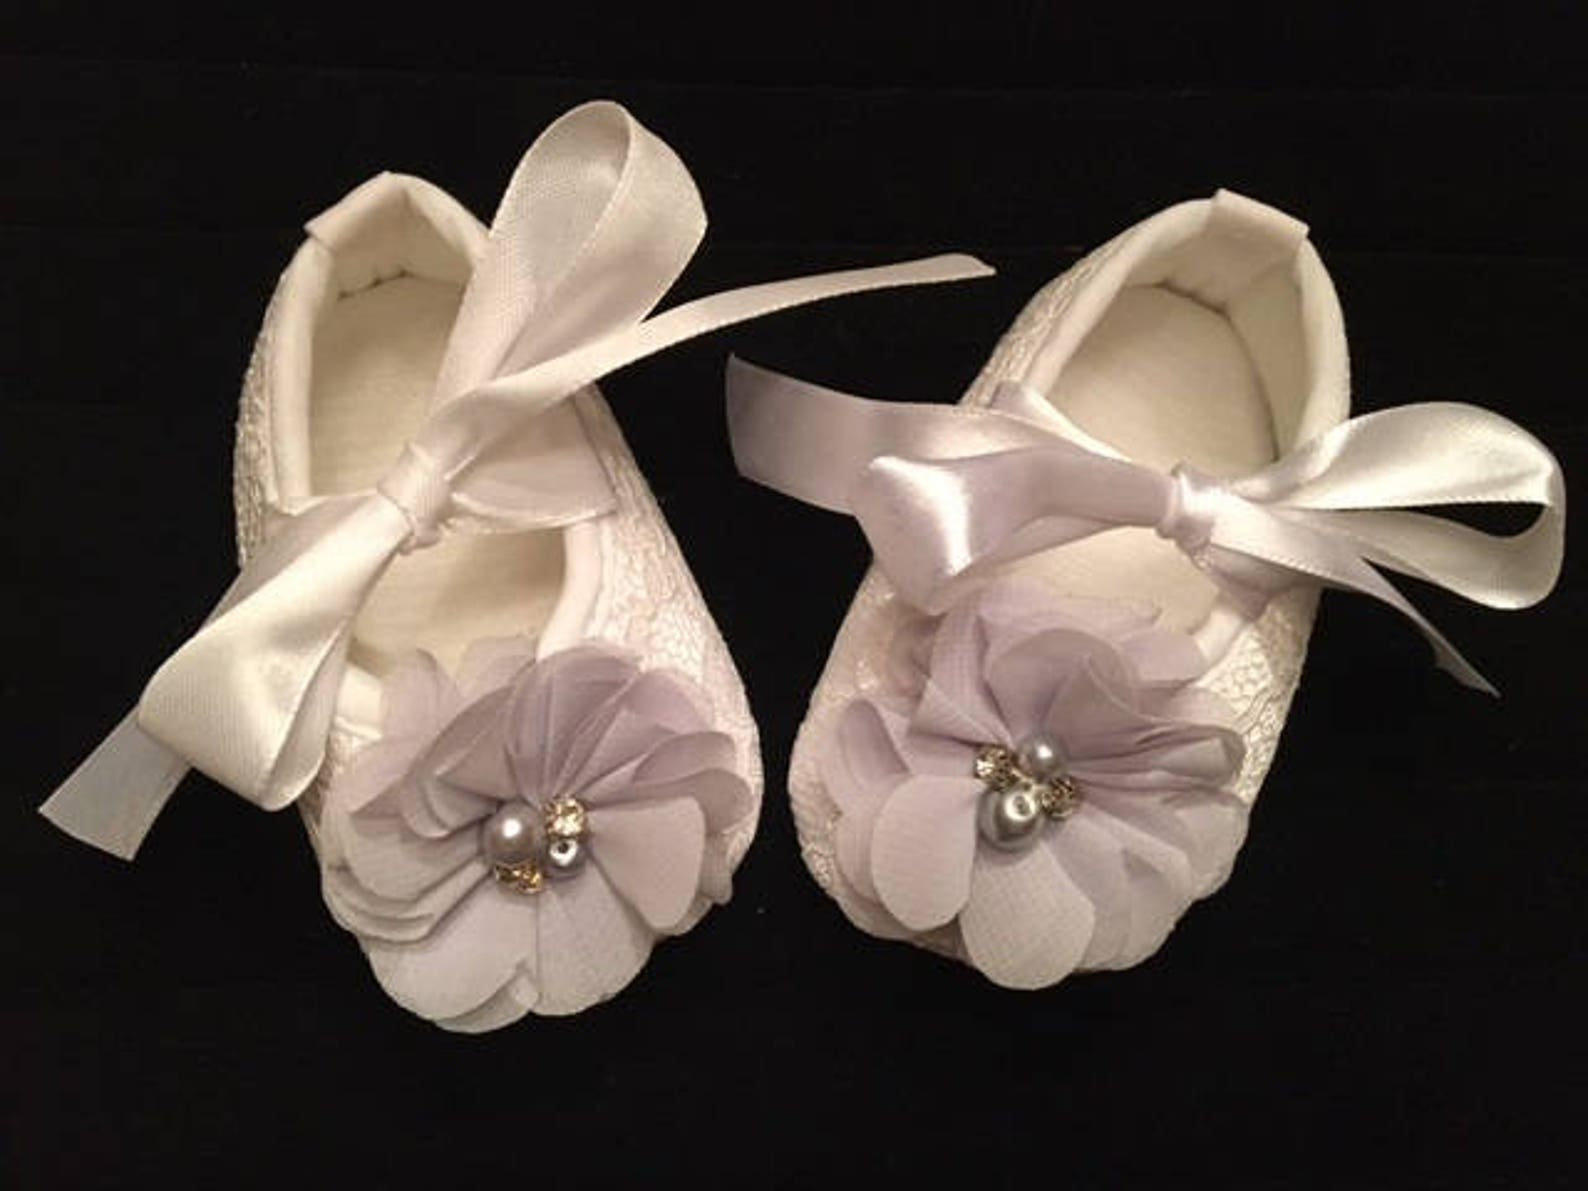 white lace baby shoes with gray flower accent - grey baby flower girl shoes - baby dress christmas shoes - baby ballet slippers